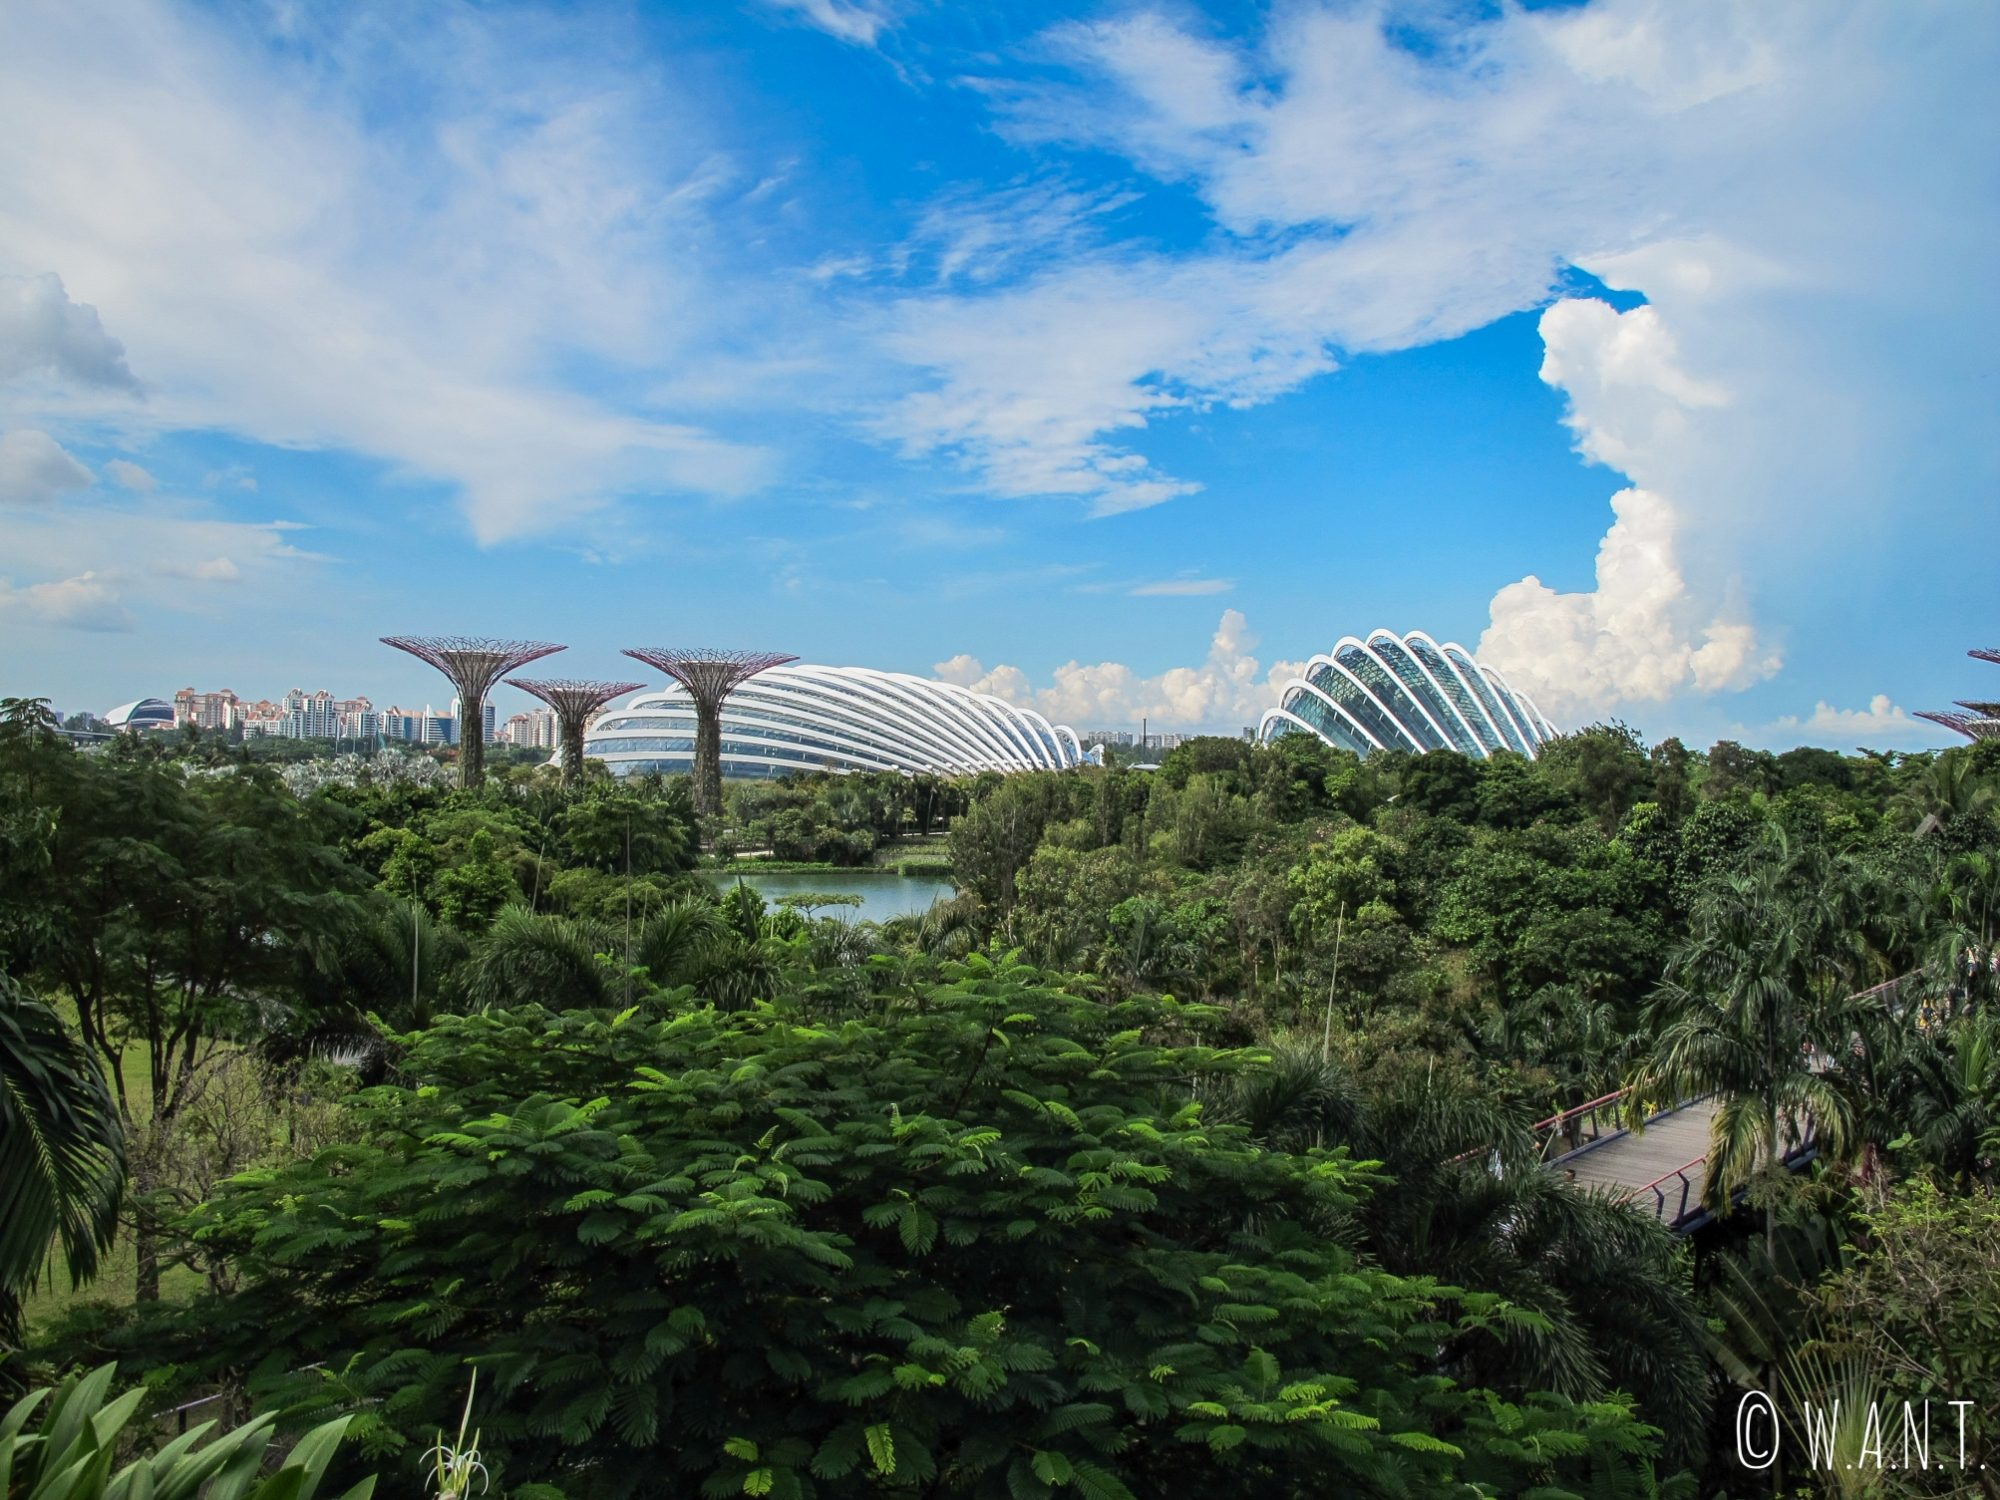 Vue sur les deux dômes de Gardens by the bay, Cloud Forest et Flower Dome